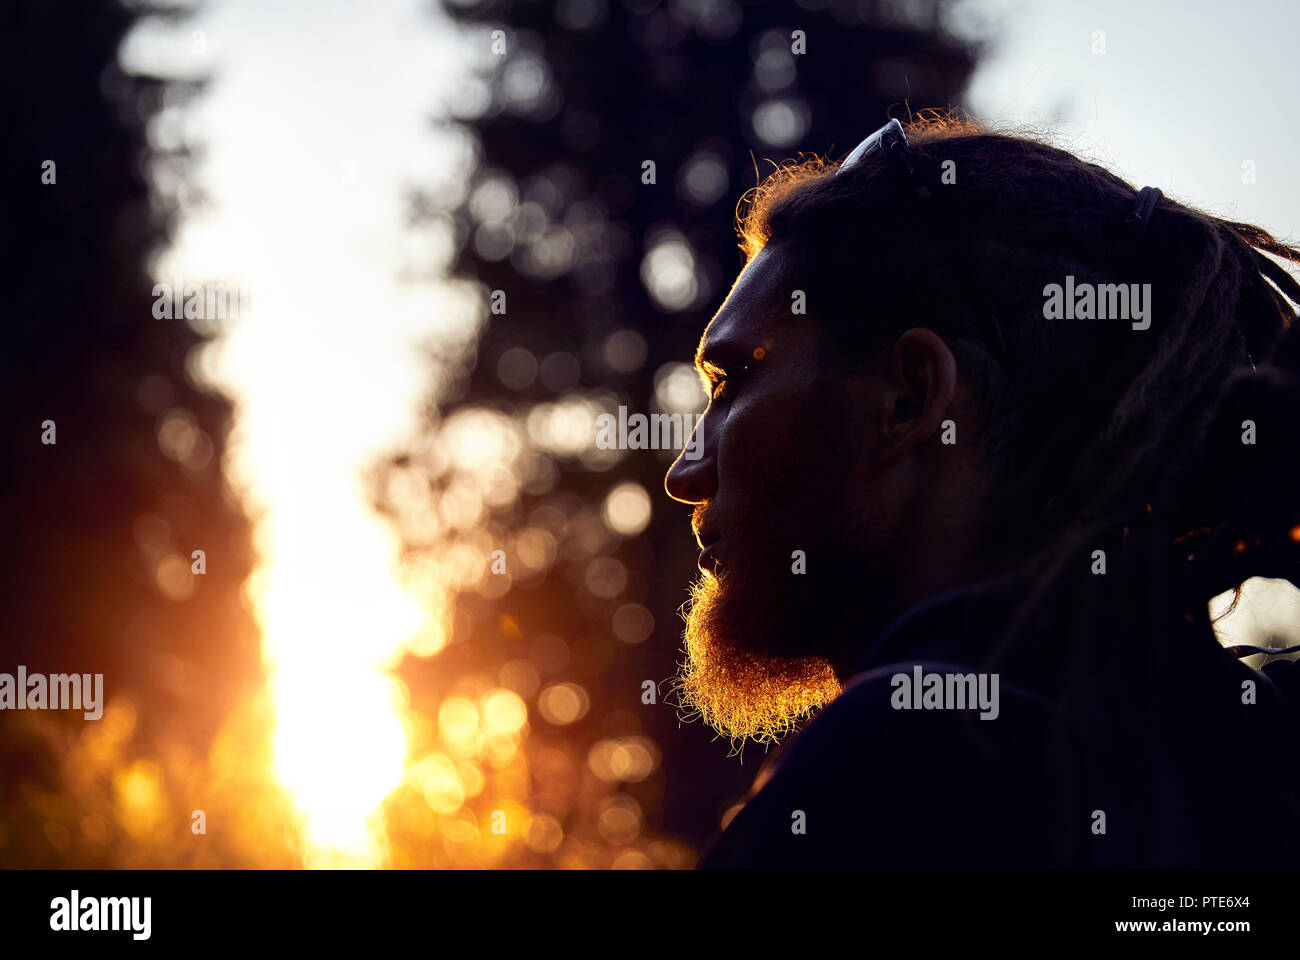 Man silhouette with dreadlocks in sunset mountain forest - Stock Image